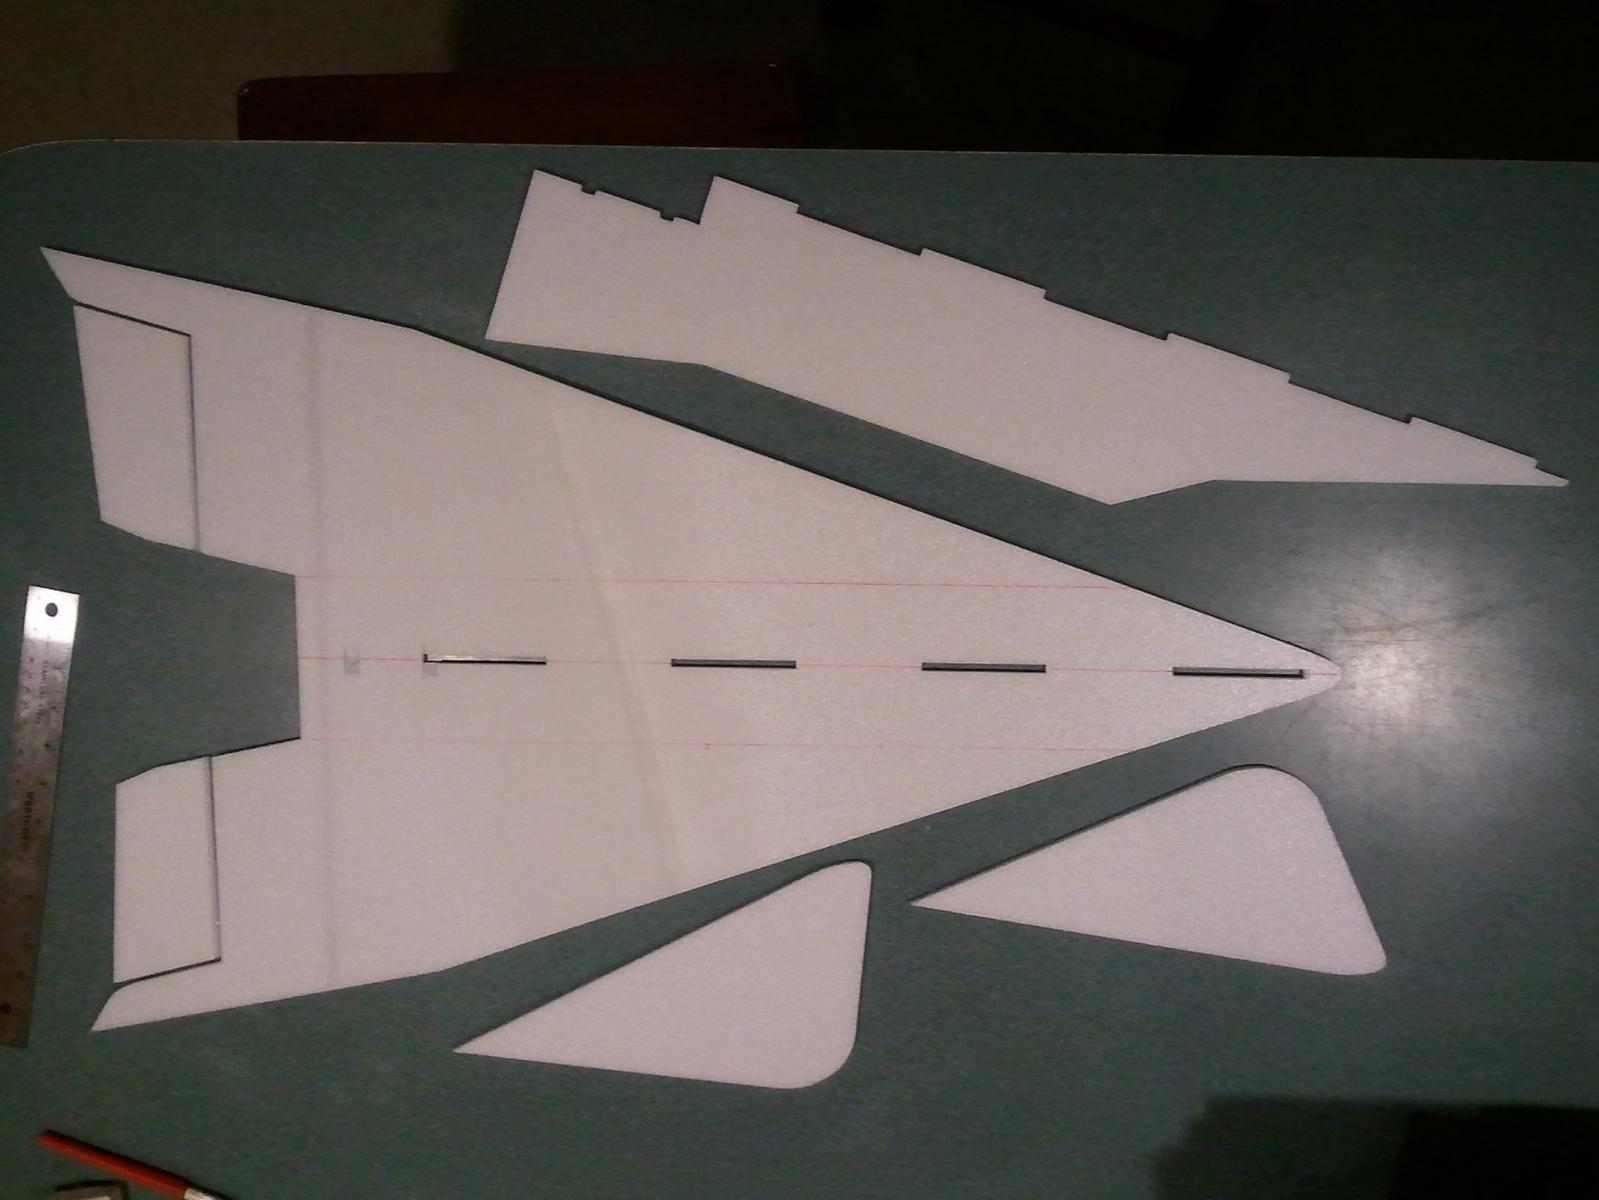 Main structural pieces cut out, could make it a simple profile at this point